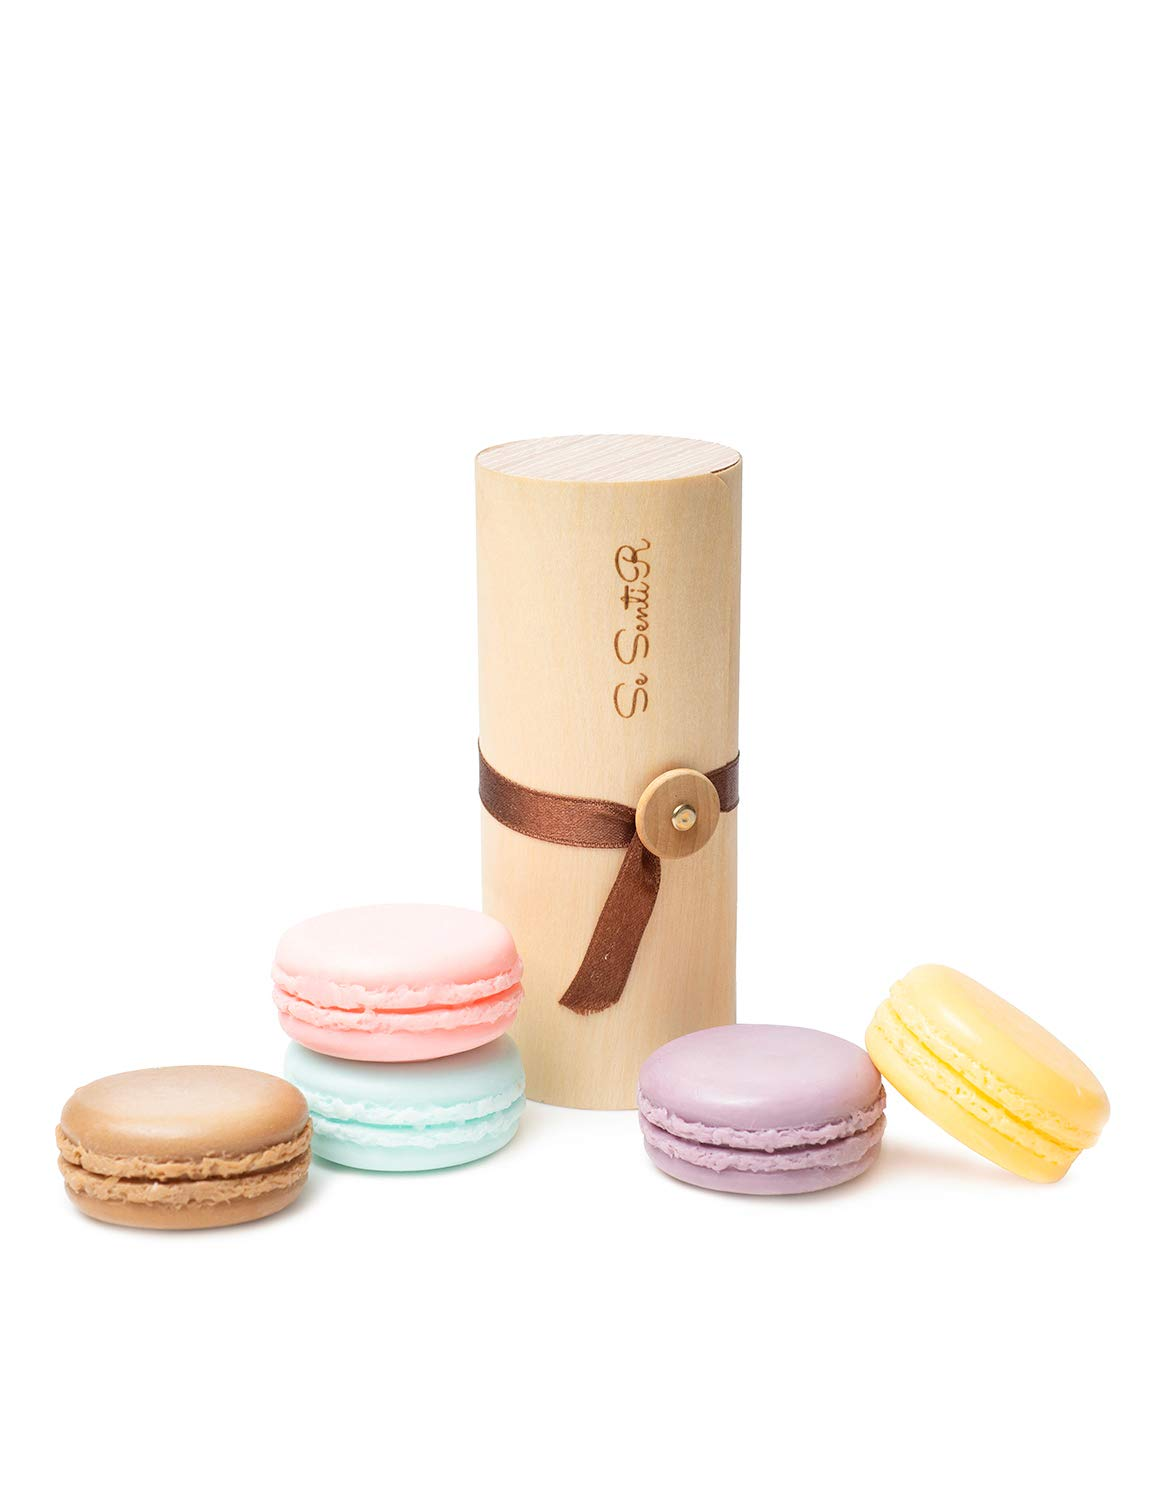 Deluxe Macaron Soap Gift Set of 5 - holiday Gifts for Women - Wife Mom Daughter Girlfriend – Aromatherapy Natural Soap Set in wood Scroll Box – Mothers Day Wedding Favors Idea Gag Gift (Set of 5)